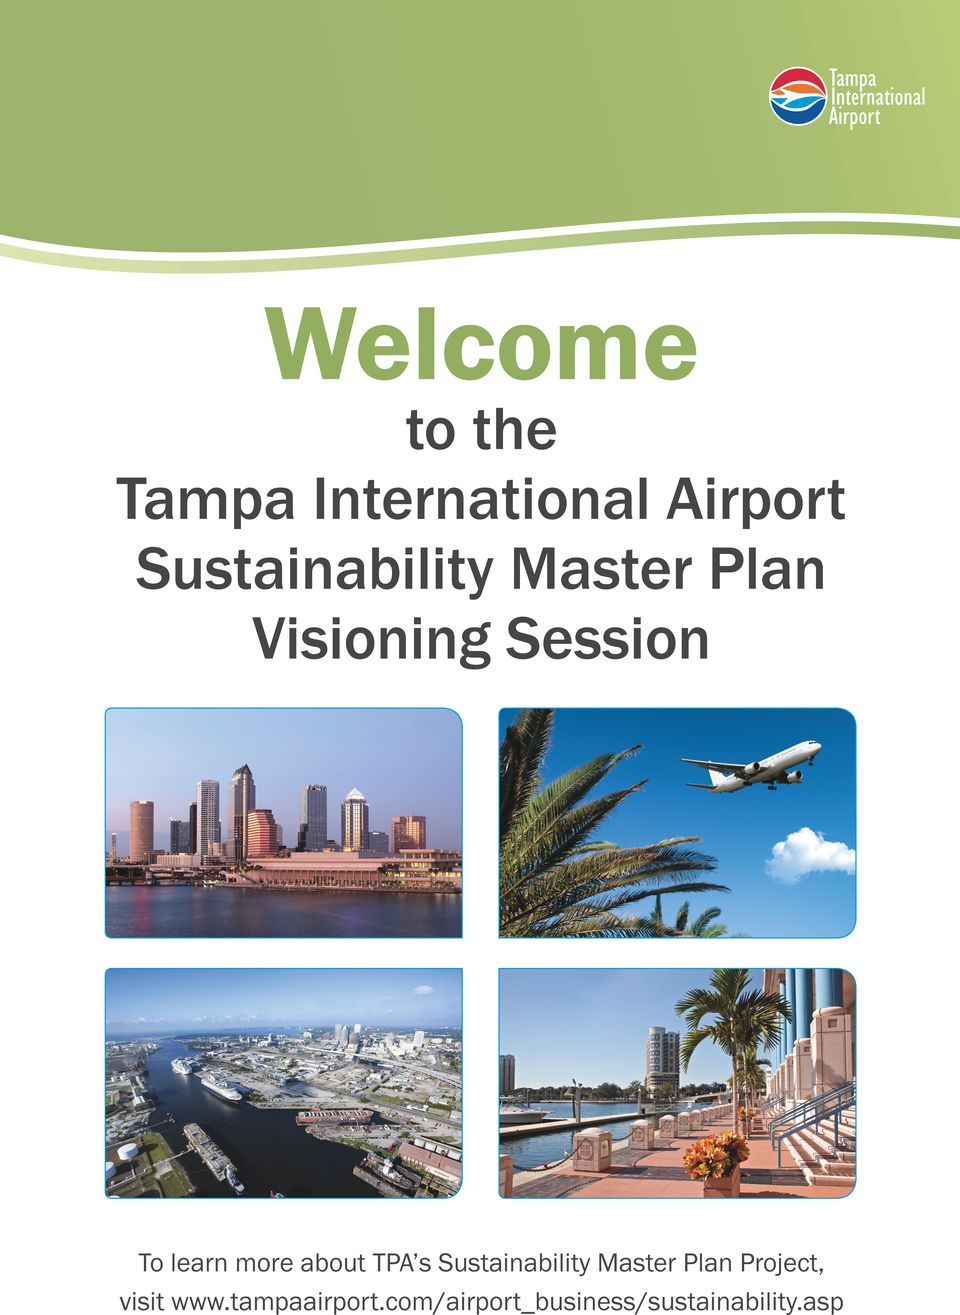 about TPA s Master Plan Project, visit www.